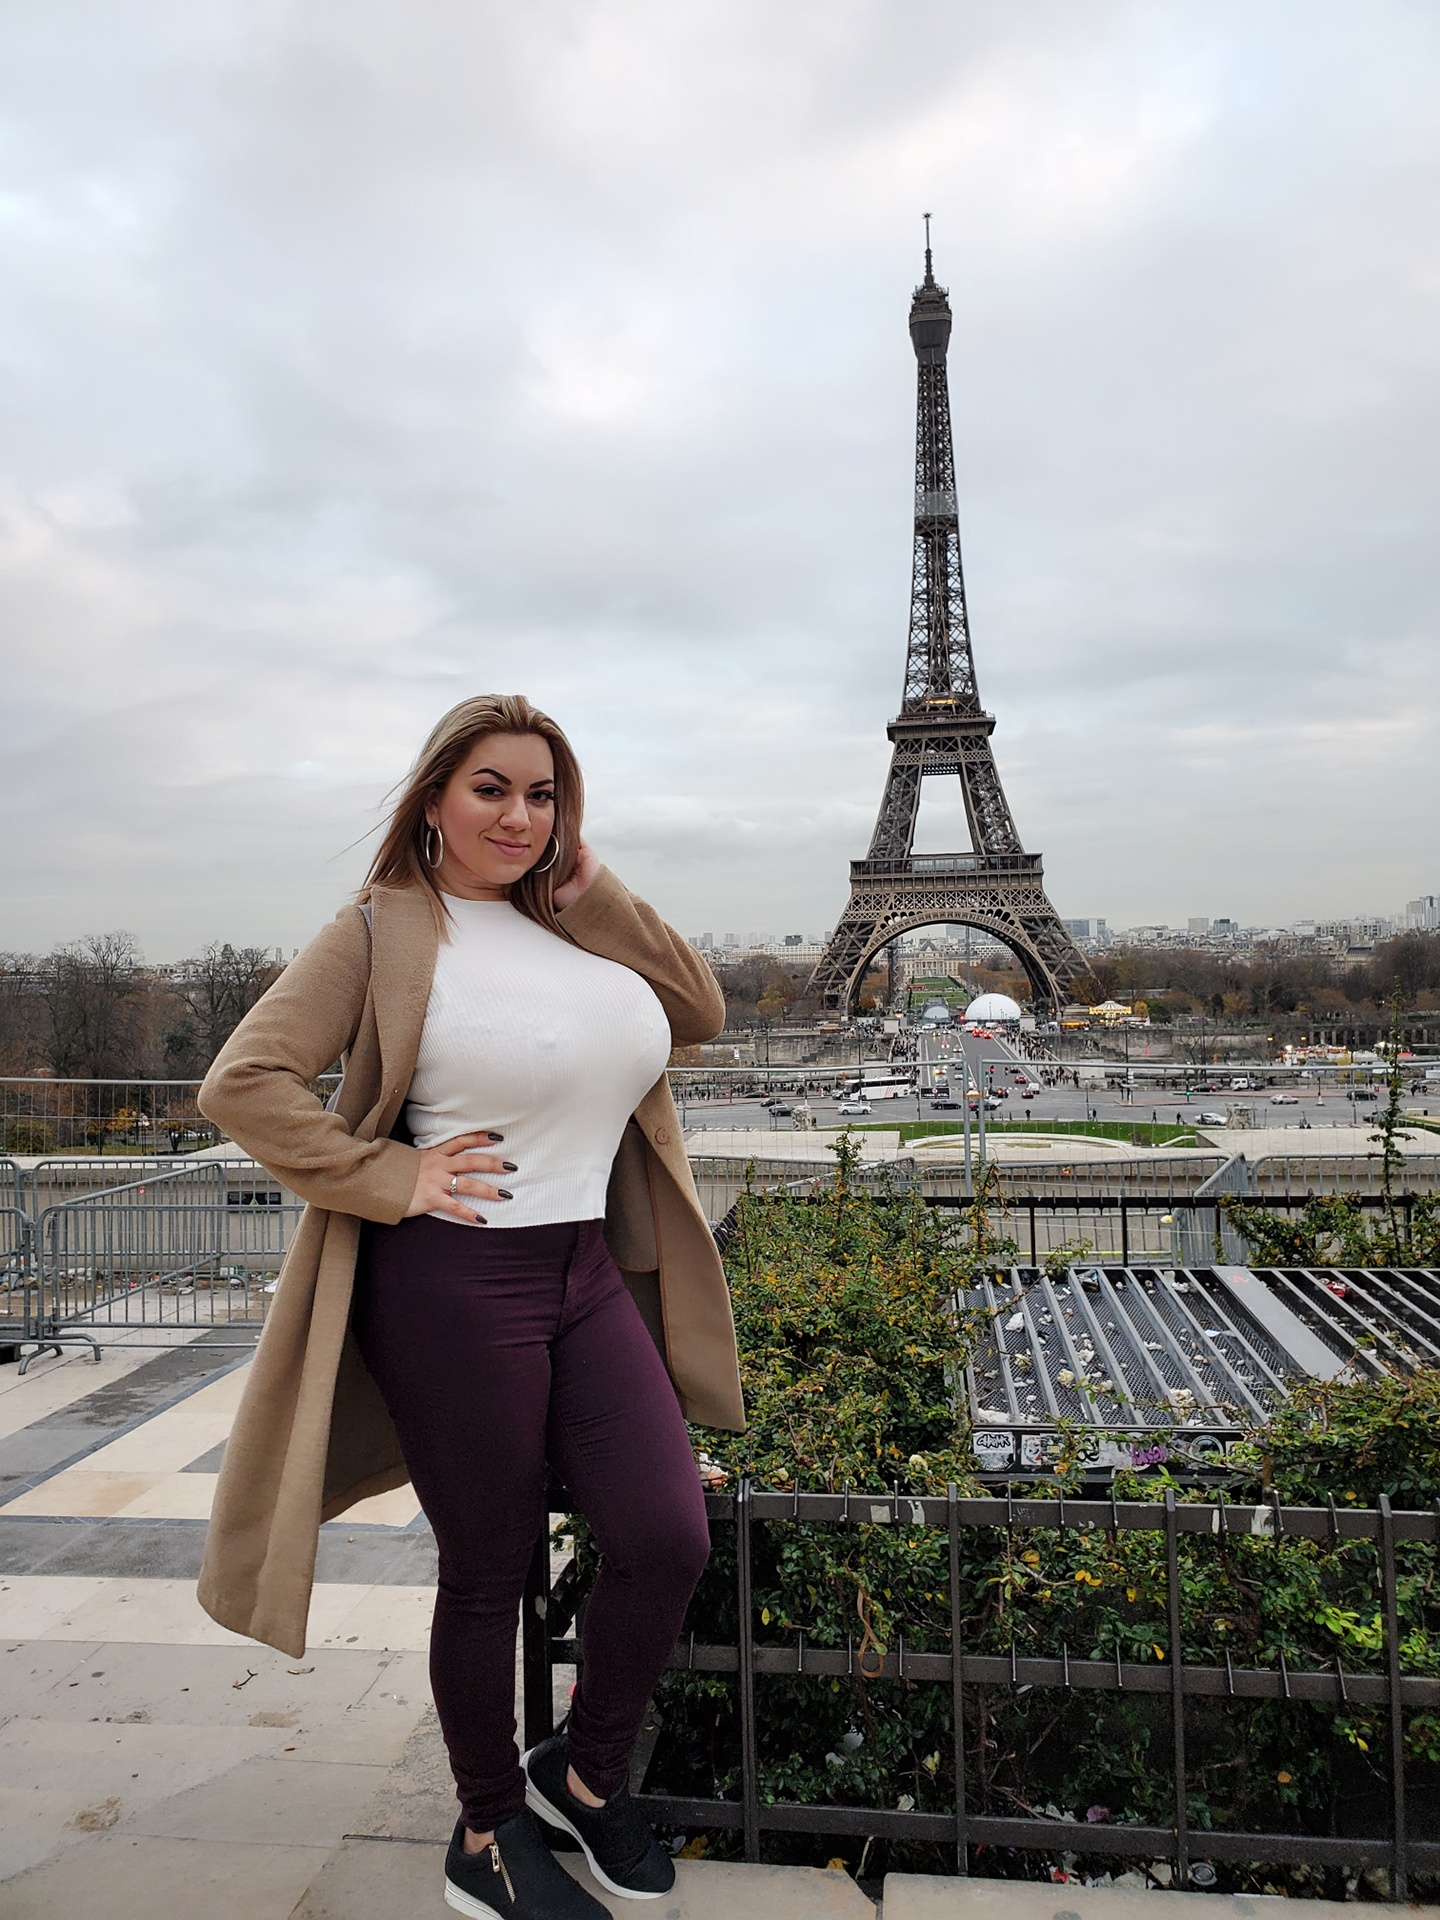 Marcela posing in Paris